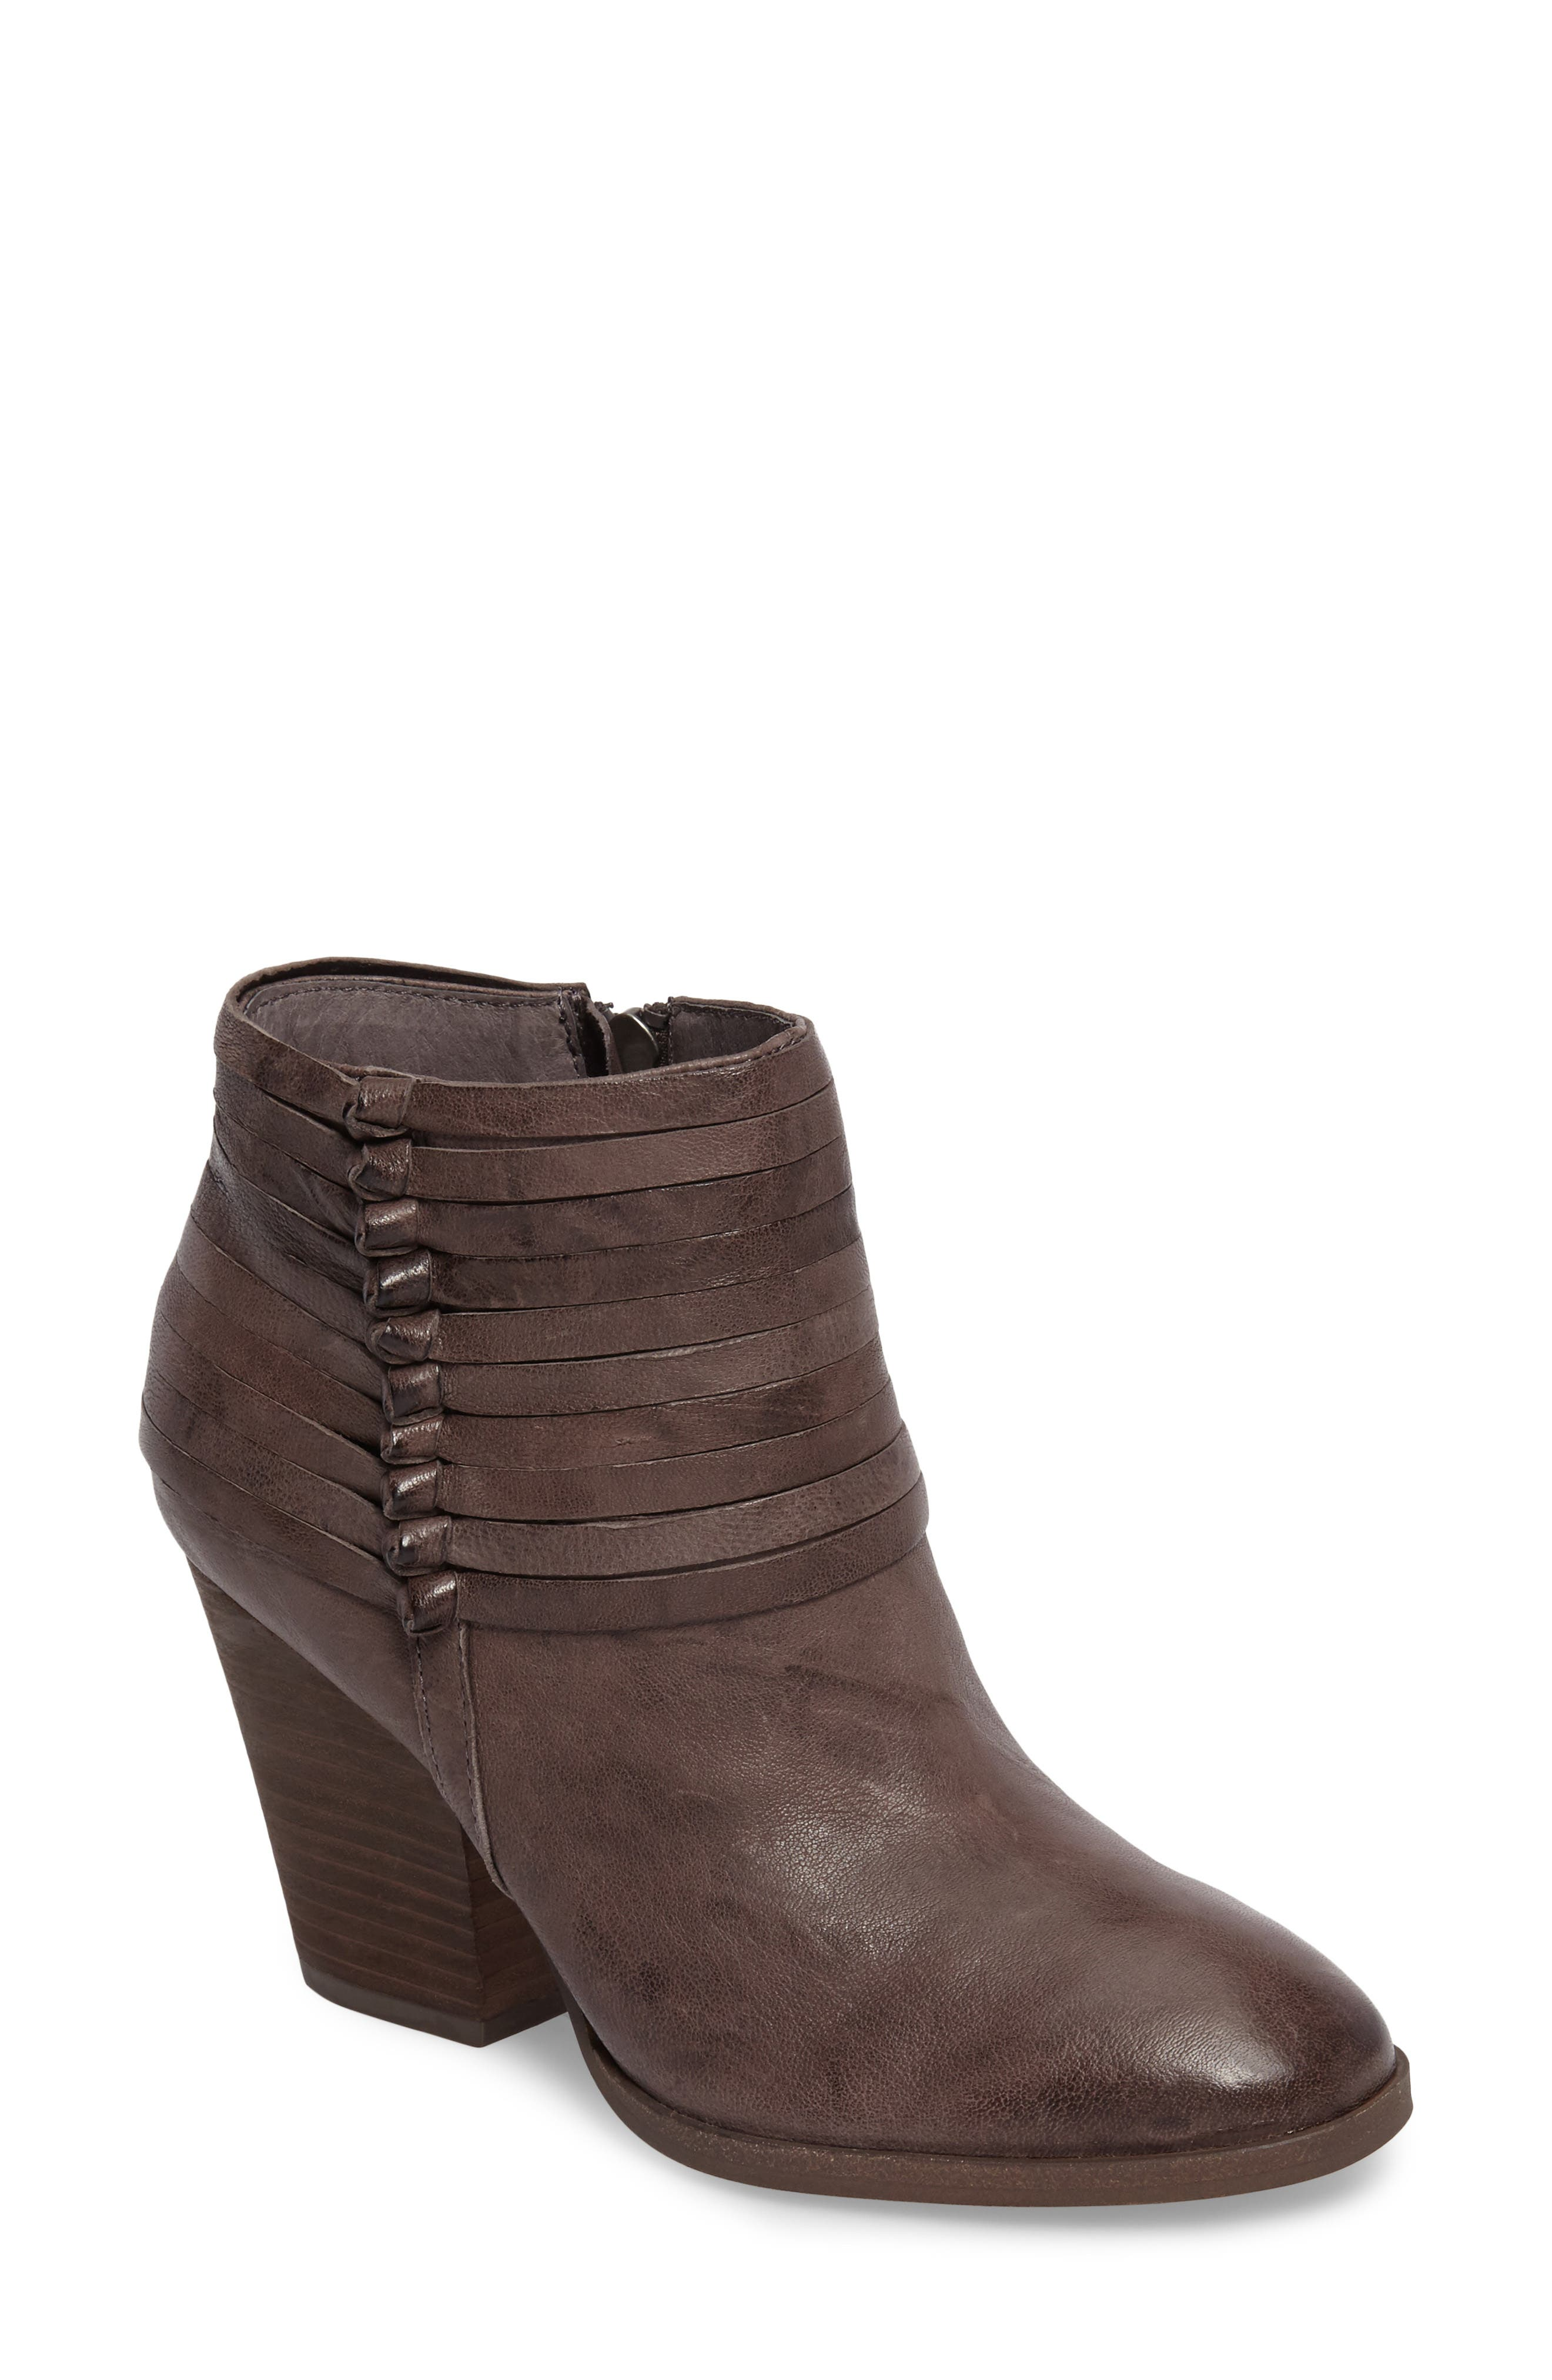 Lander Strappy Bootie,                             Main thumbnail 1, color,                             Cemento Grey Leather